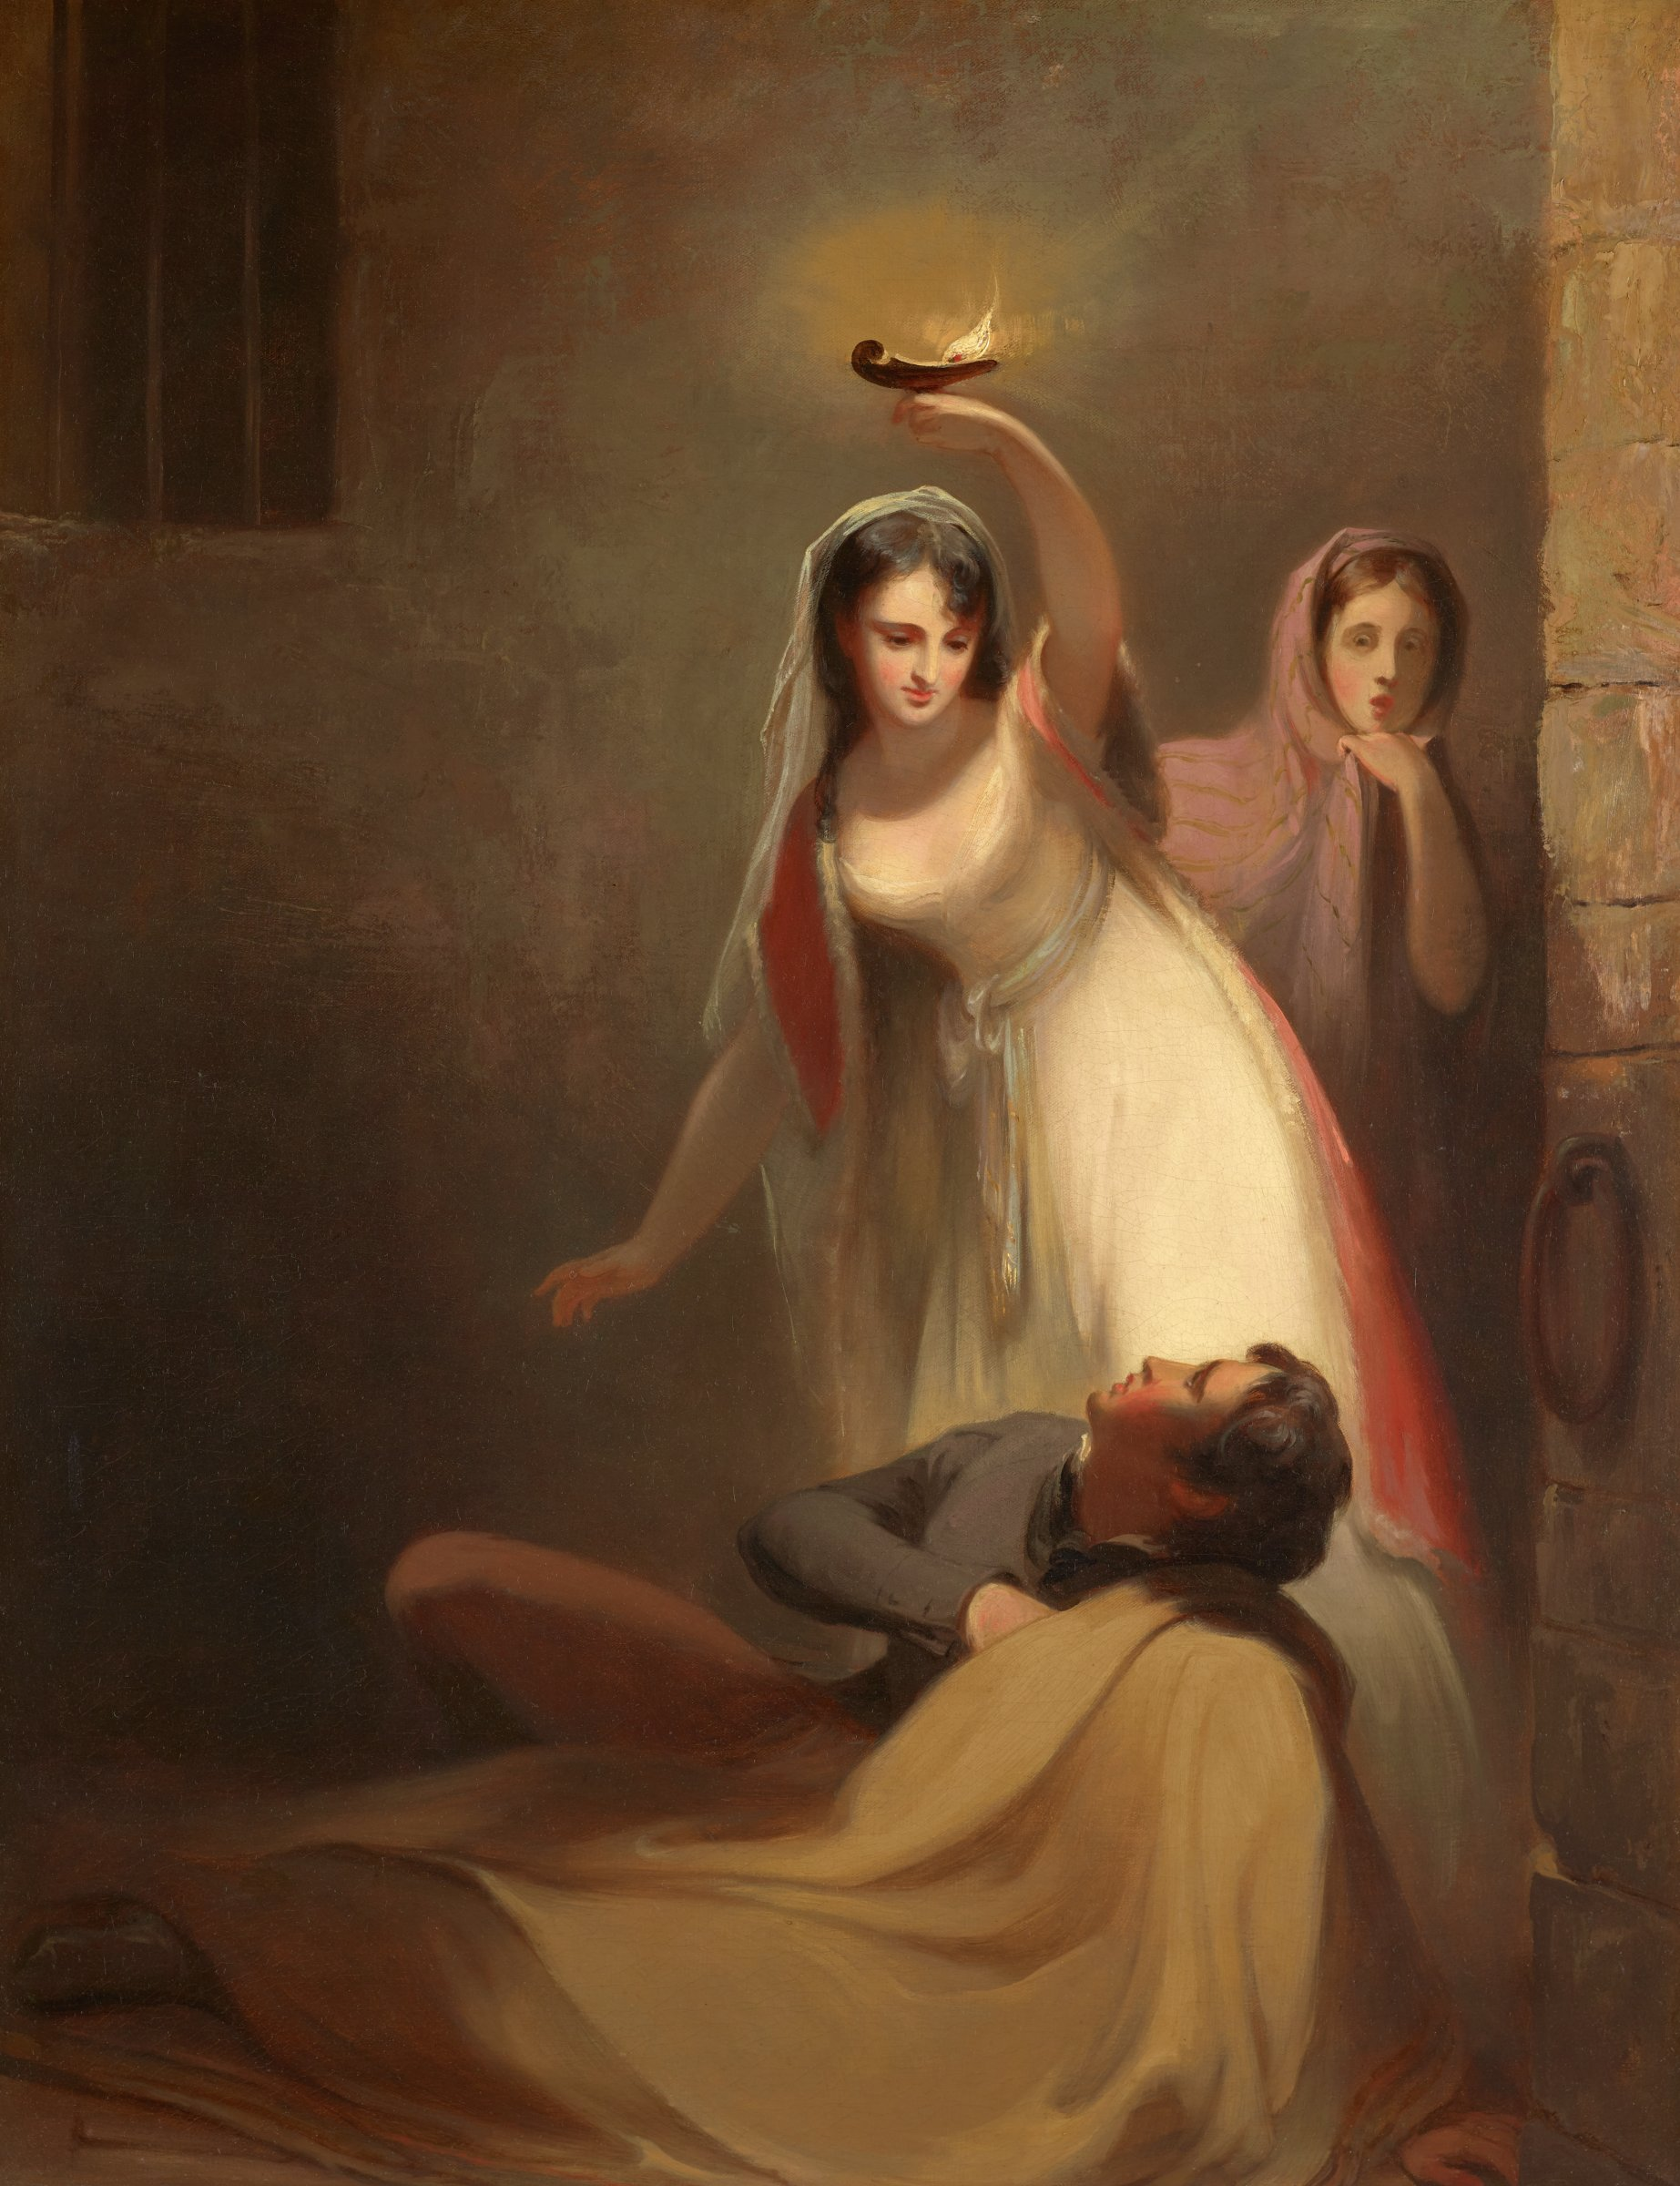 """Prison Scene from J. Fenimore Cooper's """"The Pilot"""": """"Cecelia Howard and Katherine Plowden arousing the prisoner Edward Griffith from his slumber."""", Thomas Sully, oil on canvas"""